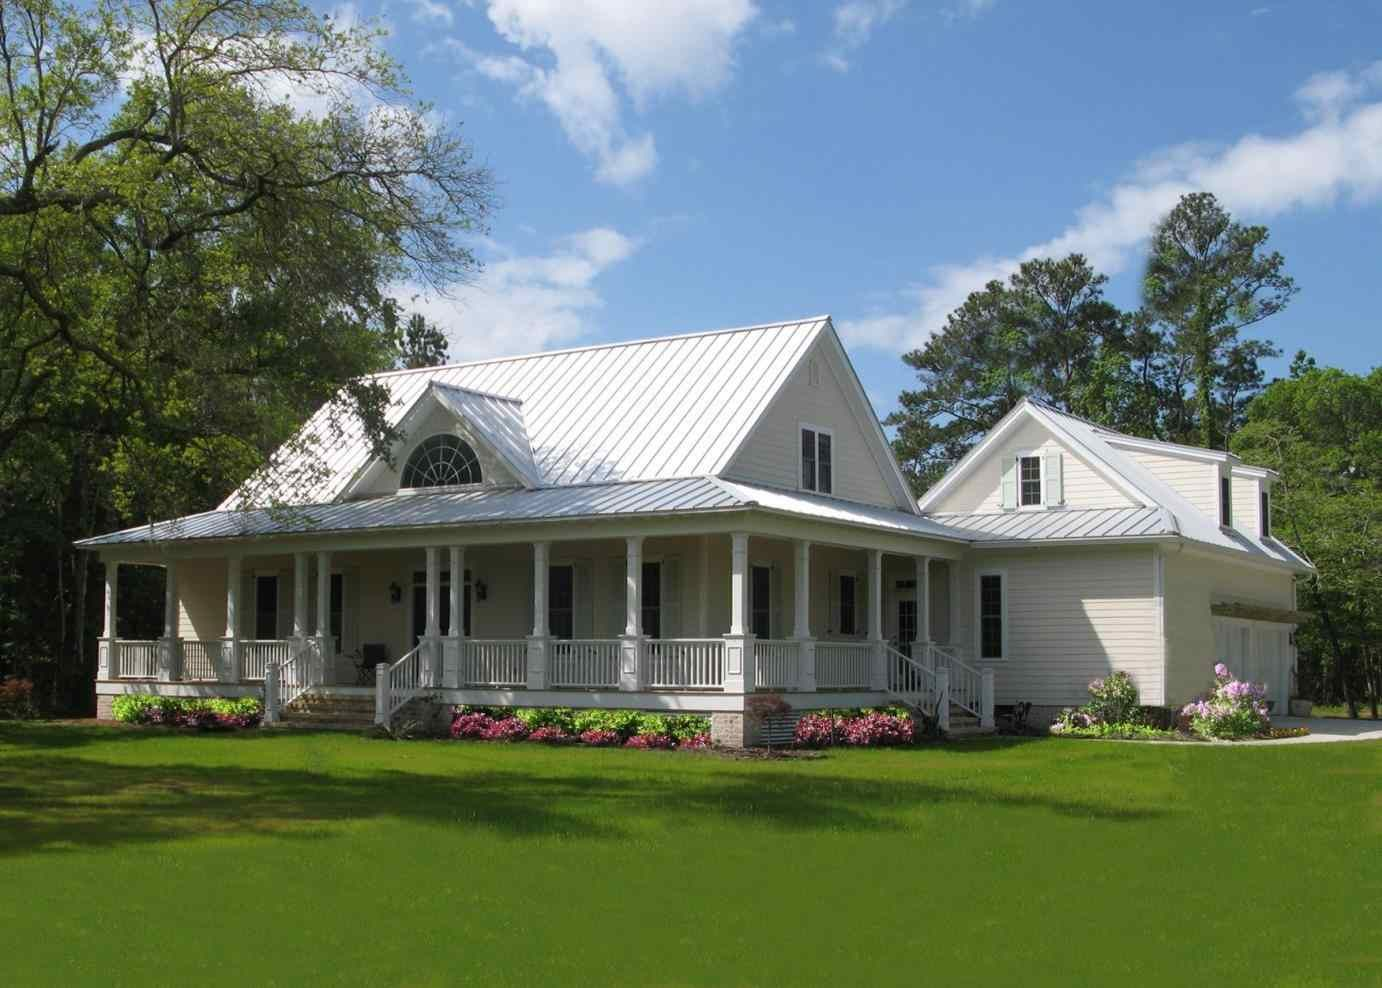 Stunning One Story Farmhouse Plans 18 Photos Colonial House Single With Wrap Around Porch Back Baby Farmhouse Style House Farmhouse Floor Plans Farmhouse Plans